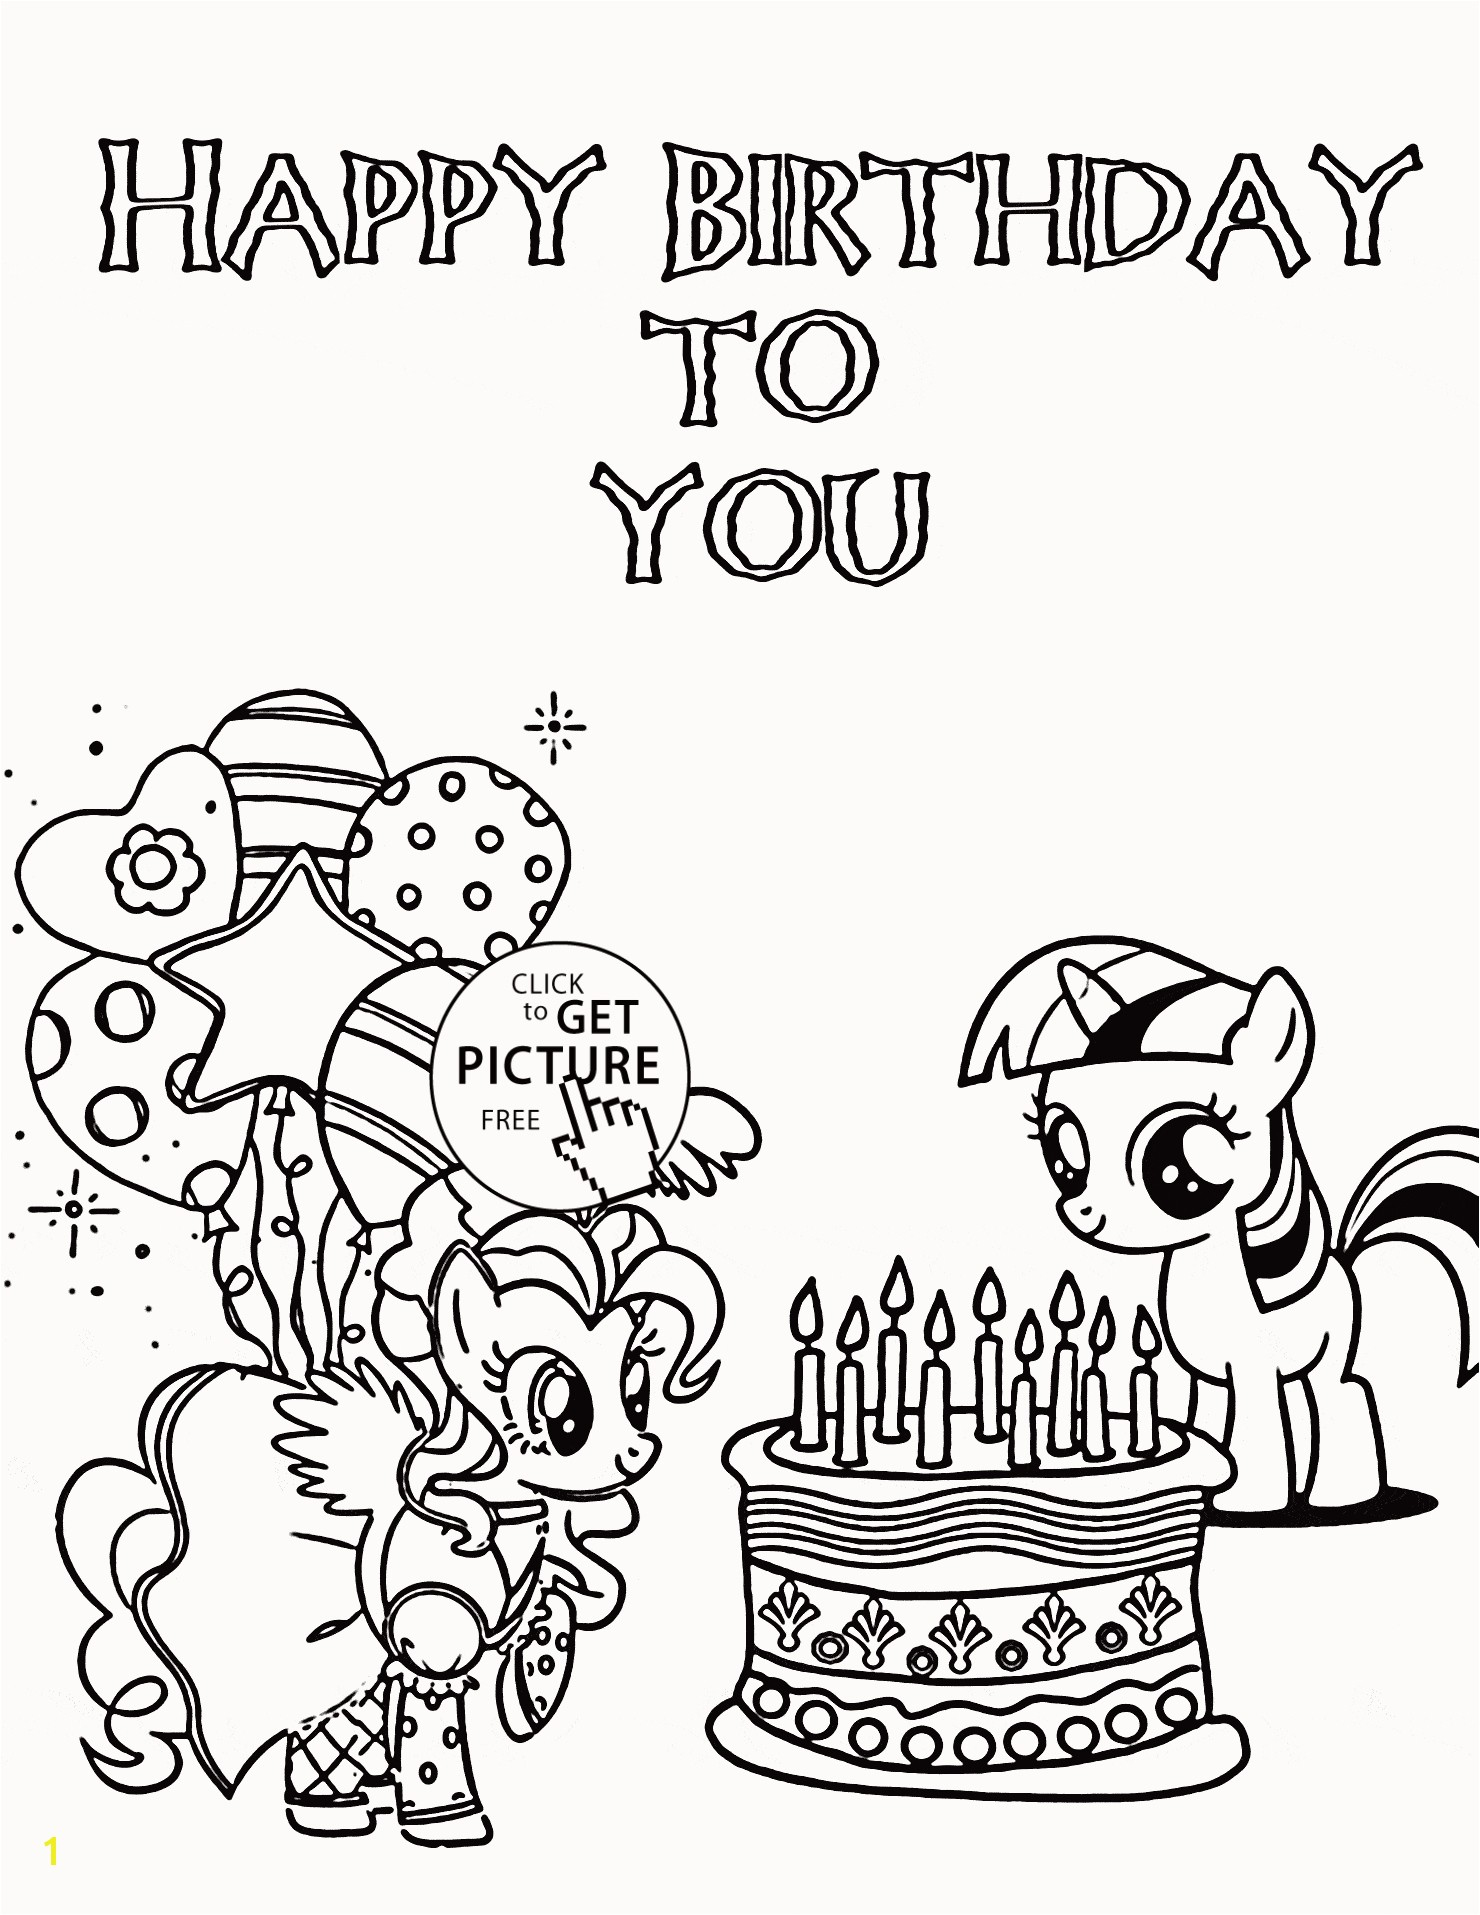 my little pony birthday coloring pages luxury cartoon fish outline of my little pony birthday coloring pages